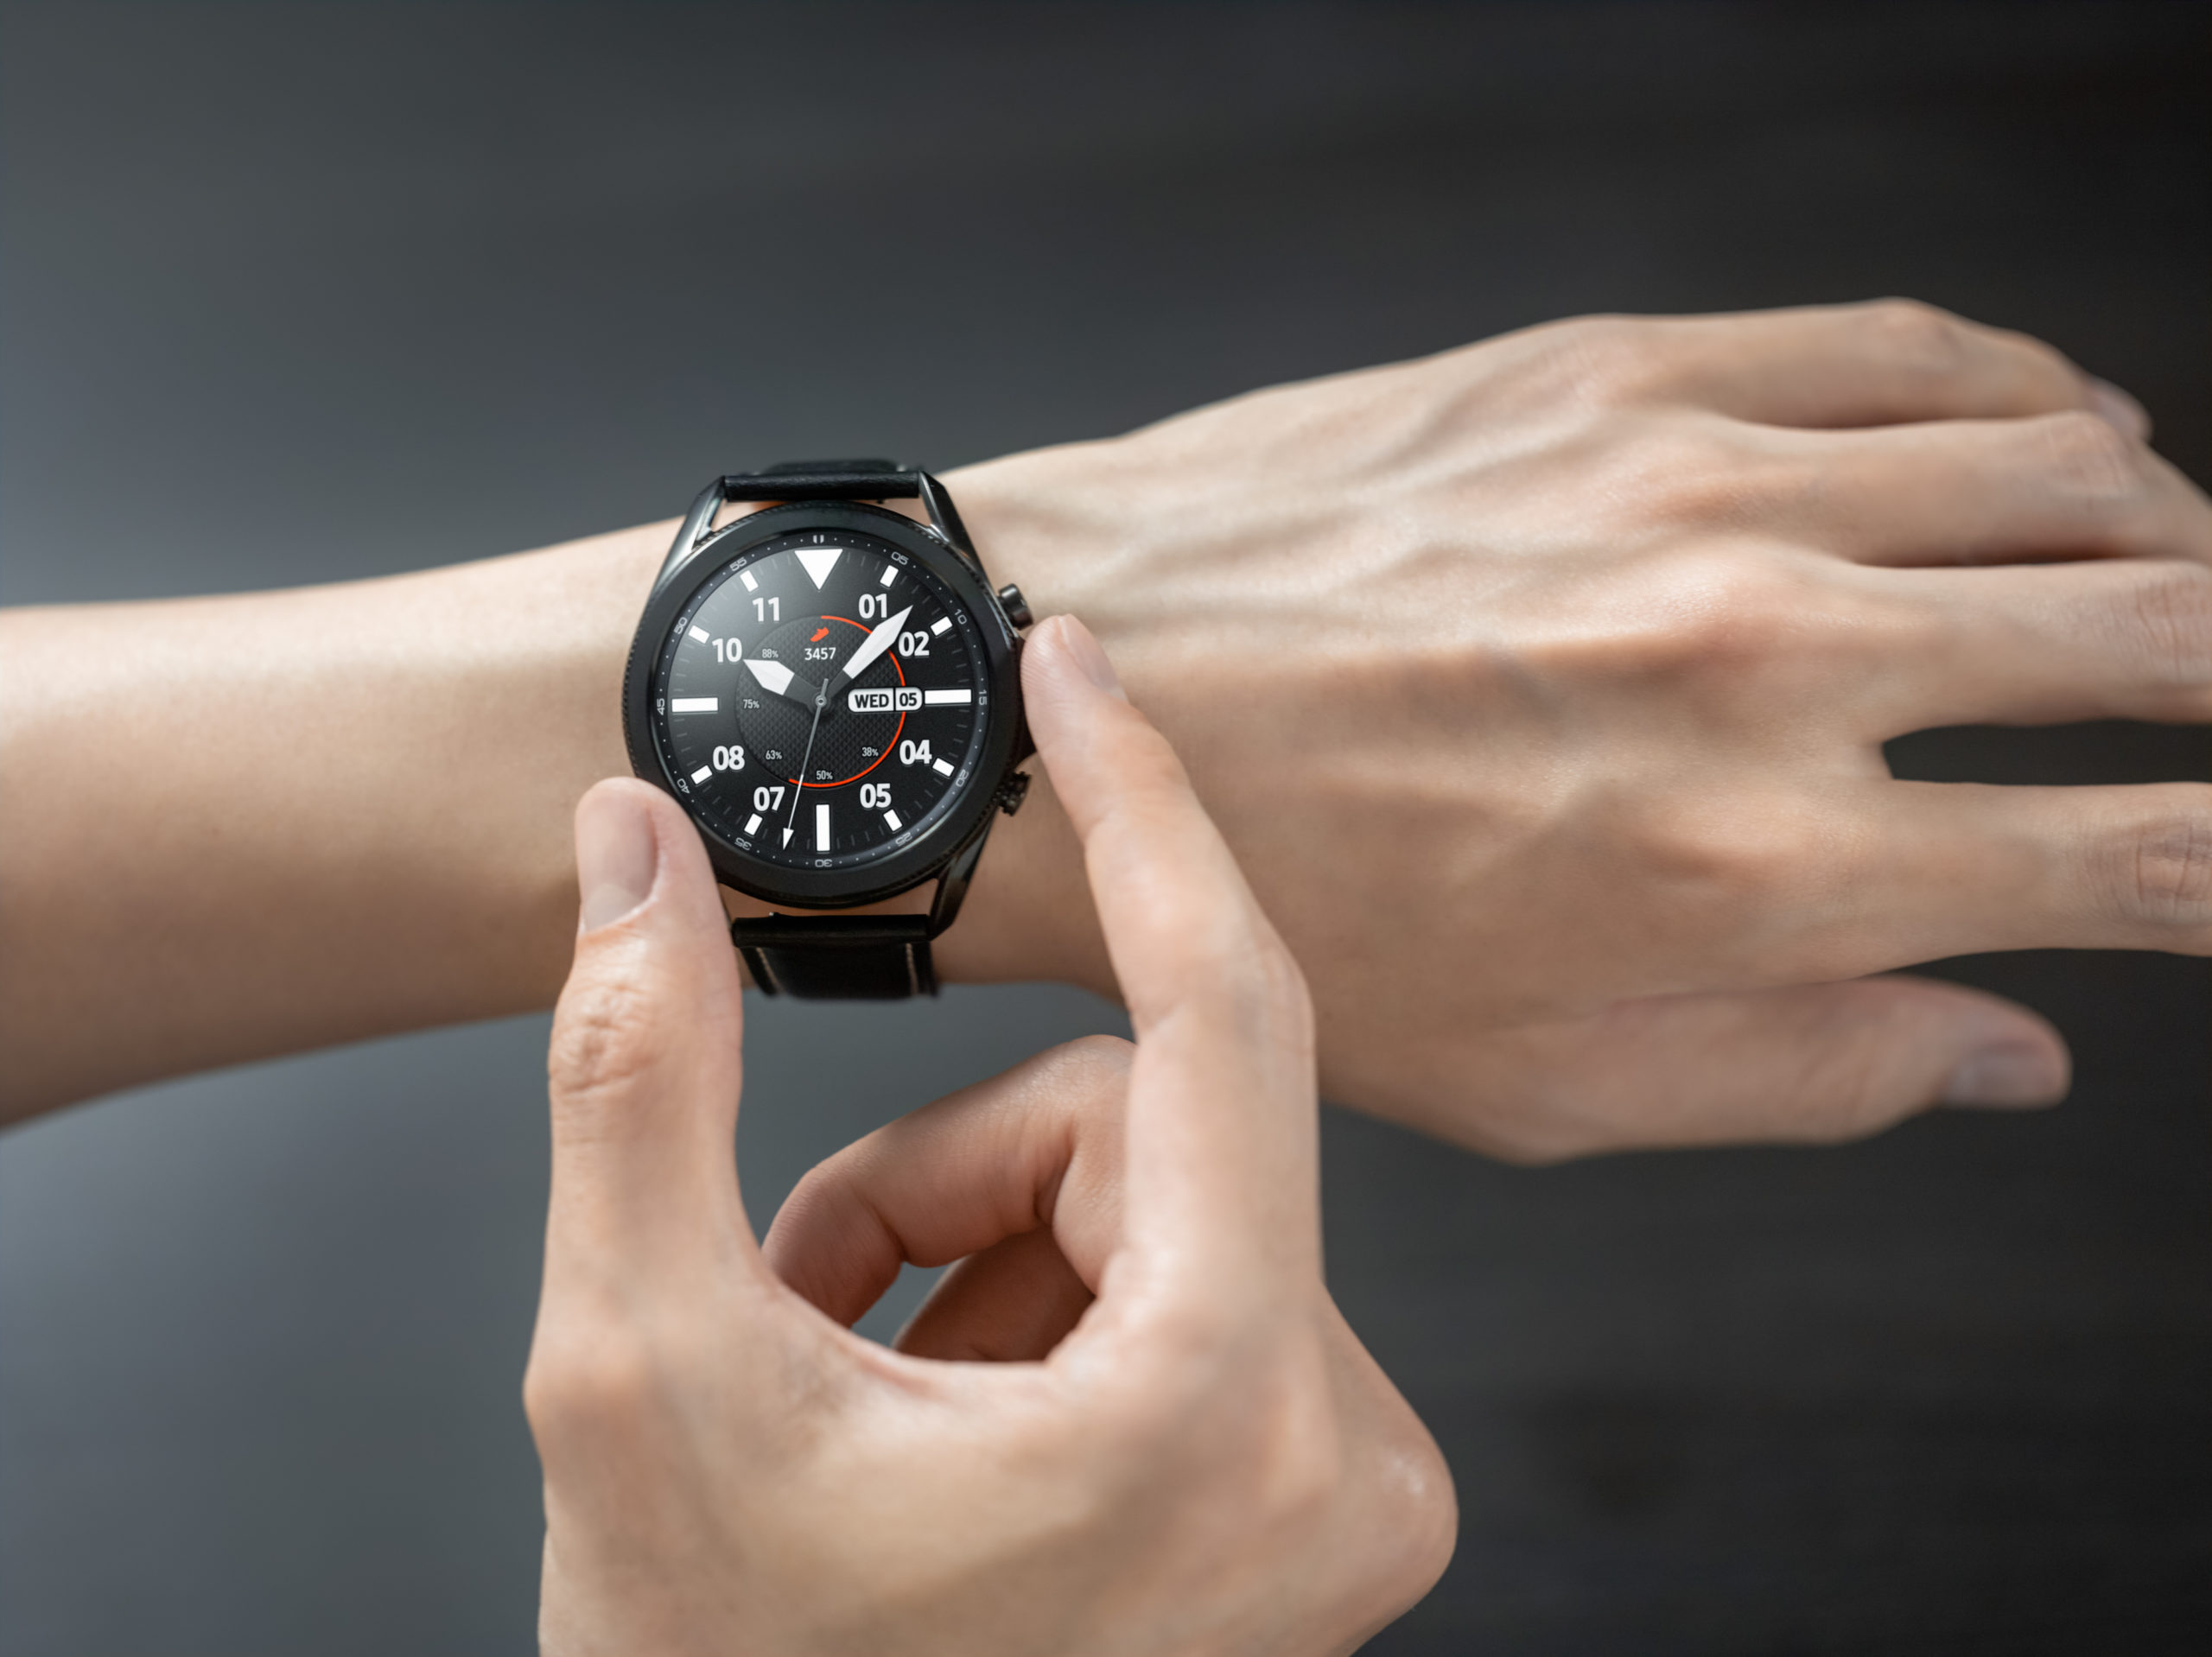 Samsung Galaxy Watch 4 could get a 'Classic' variant